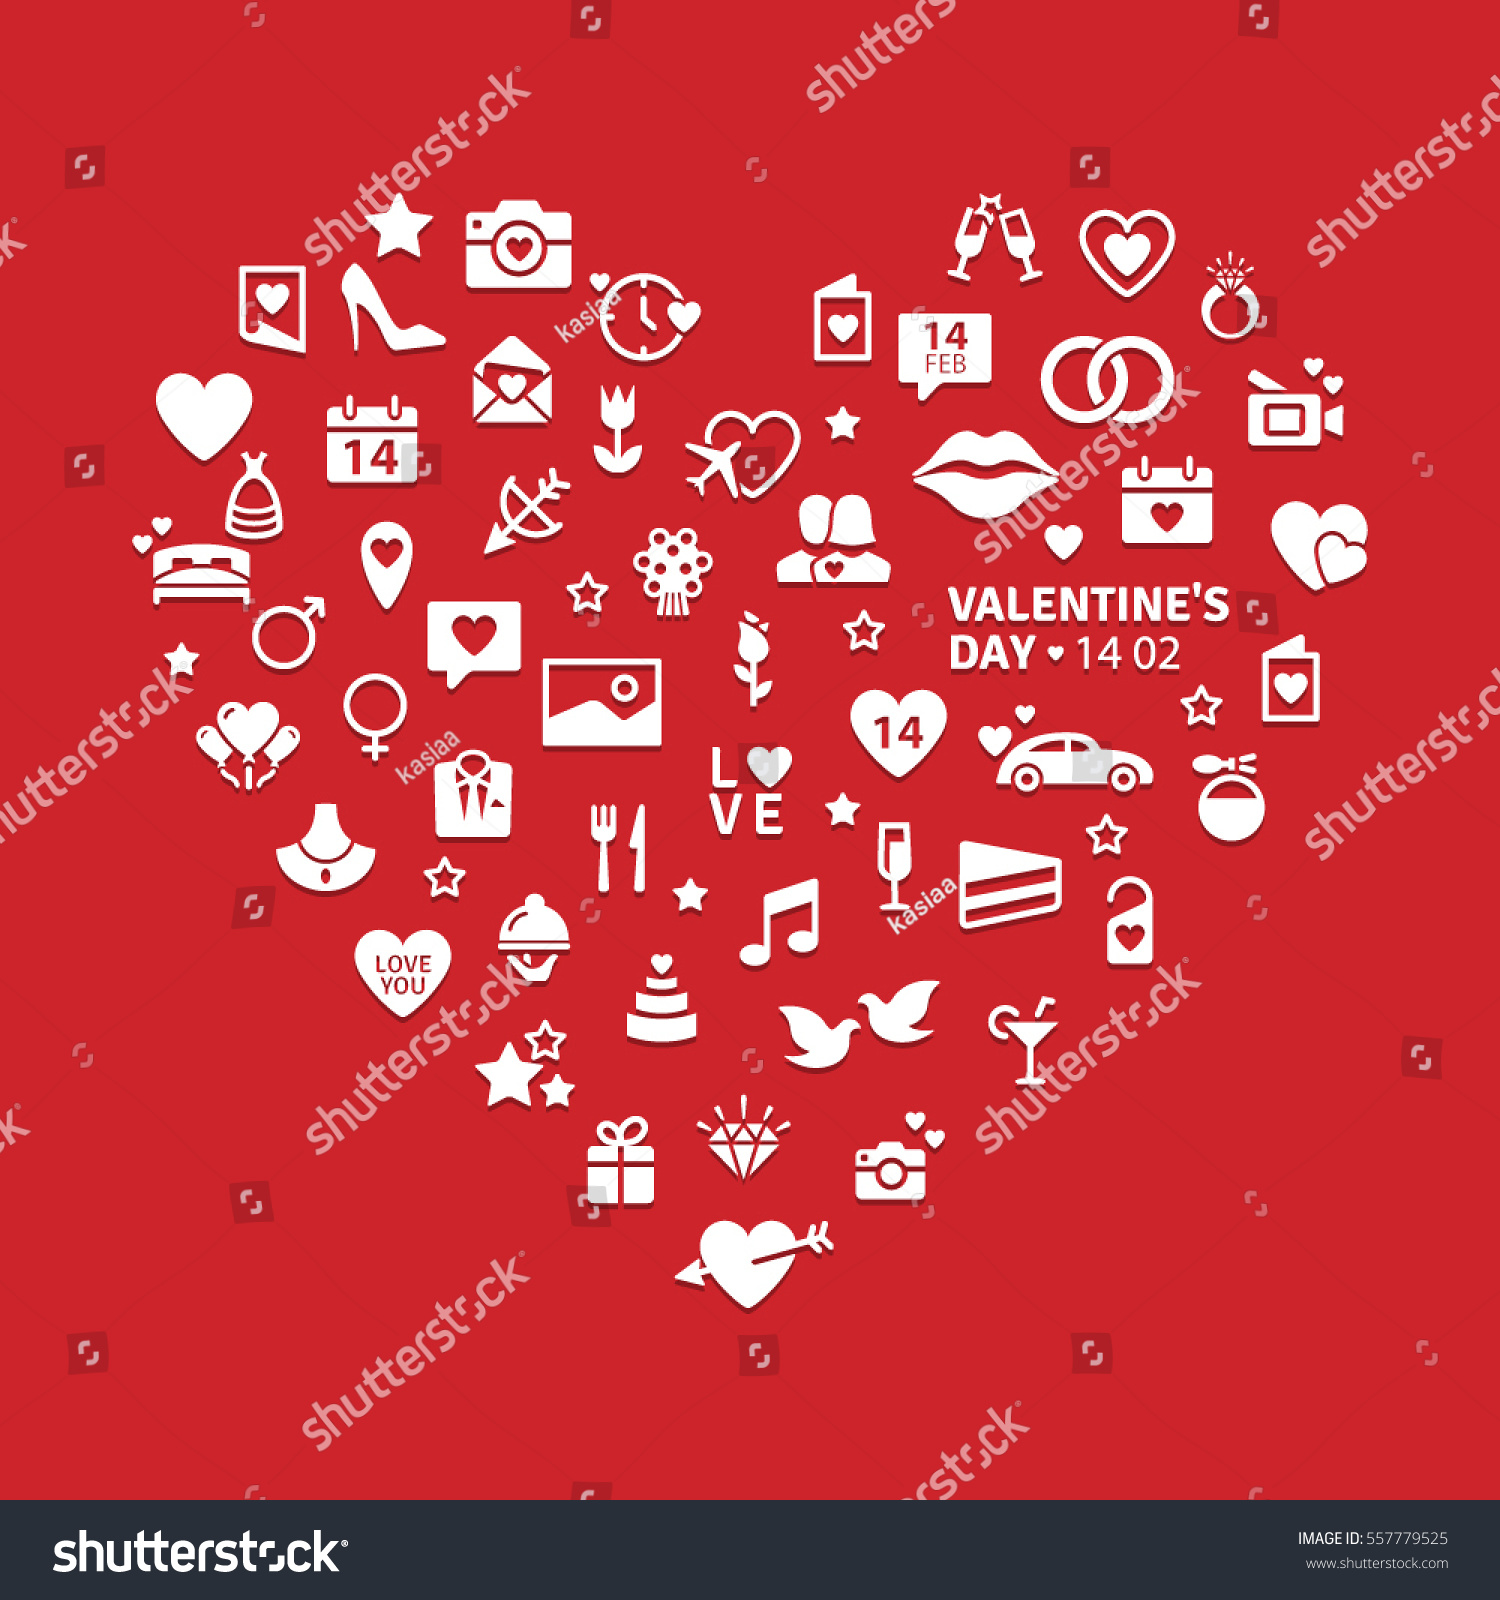 Happy Valentines Day Modern Flat Icons Stock Vector (Royalty Free ...